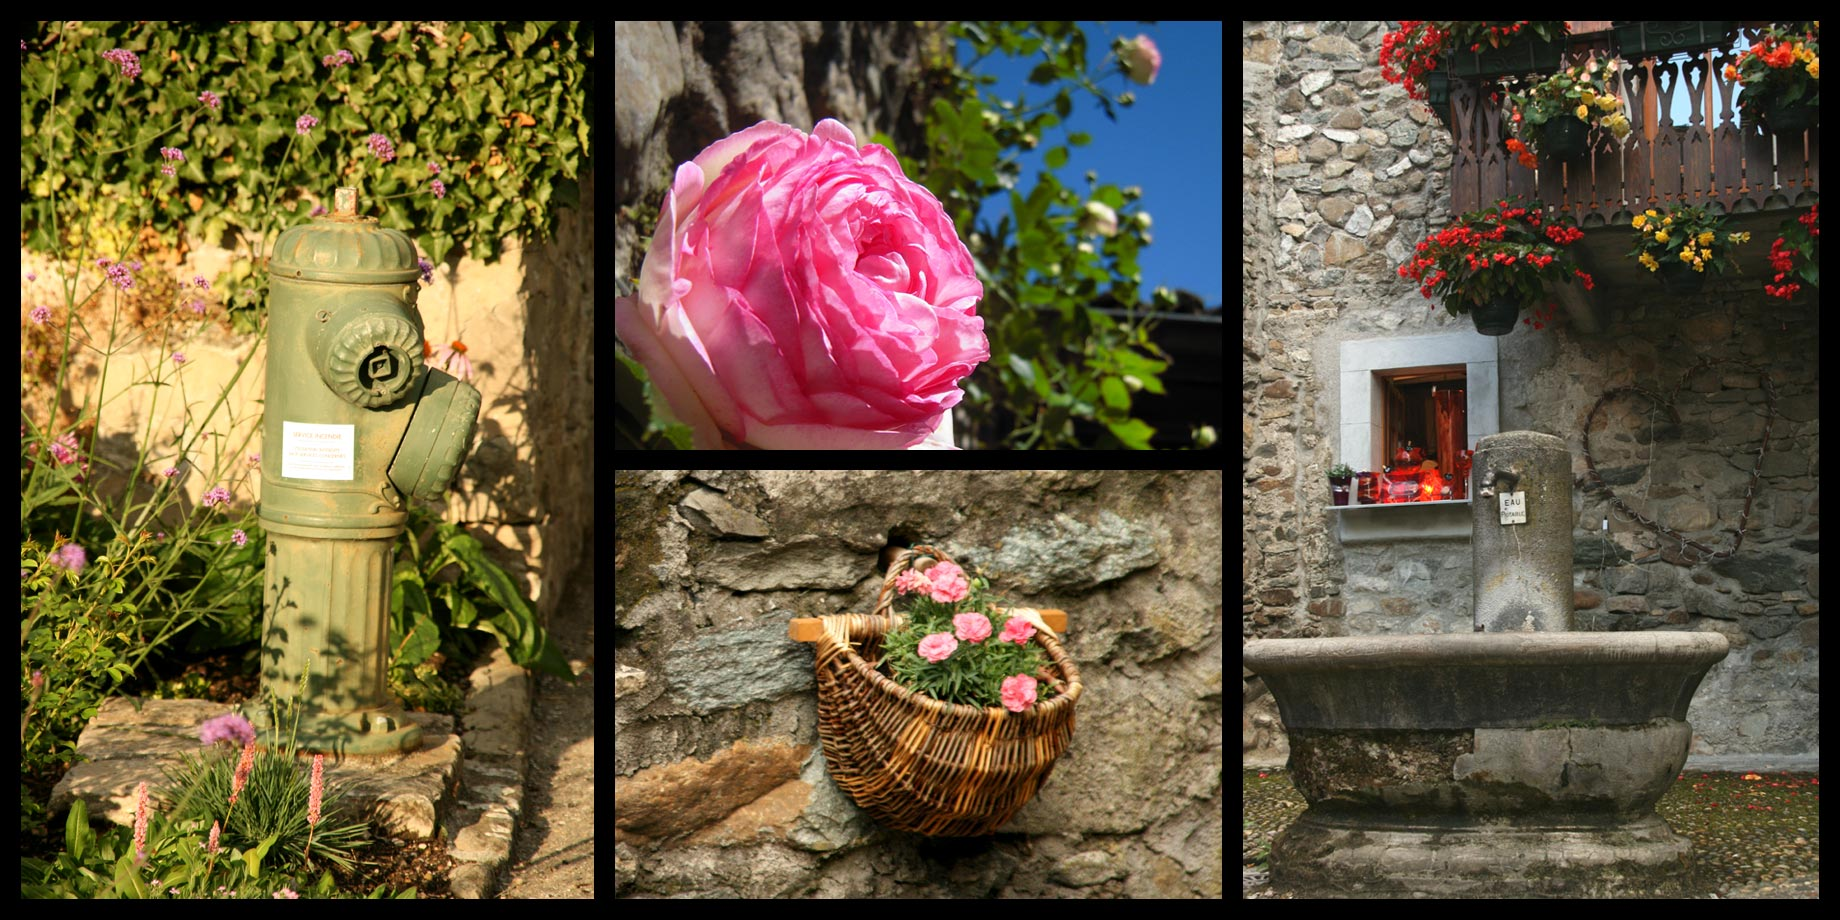 Flowers and old rocks are everywhere in the village.